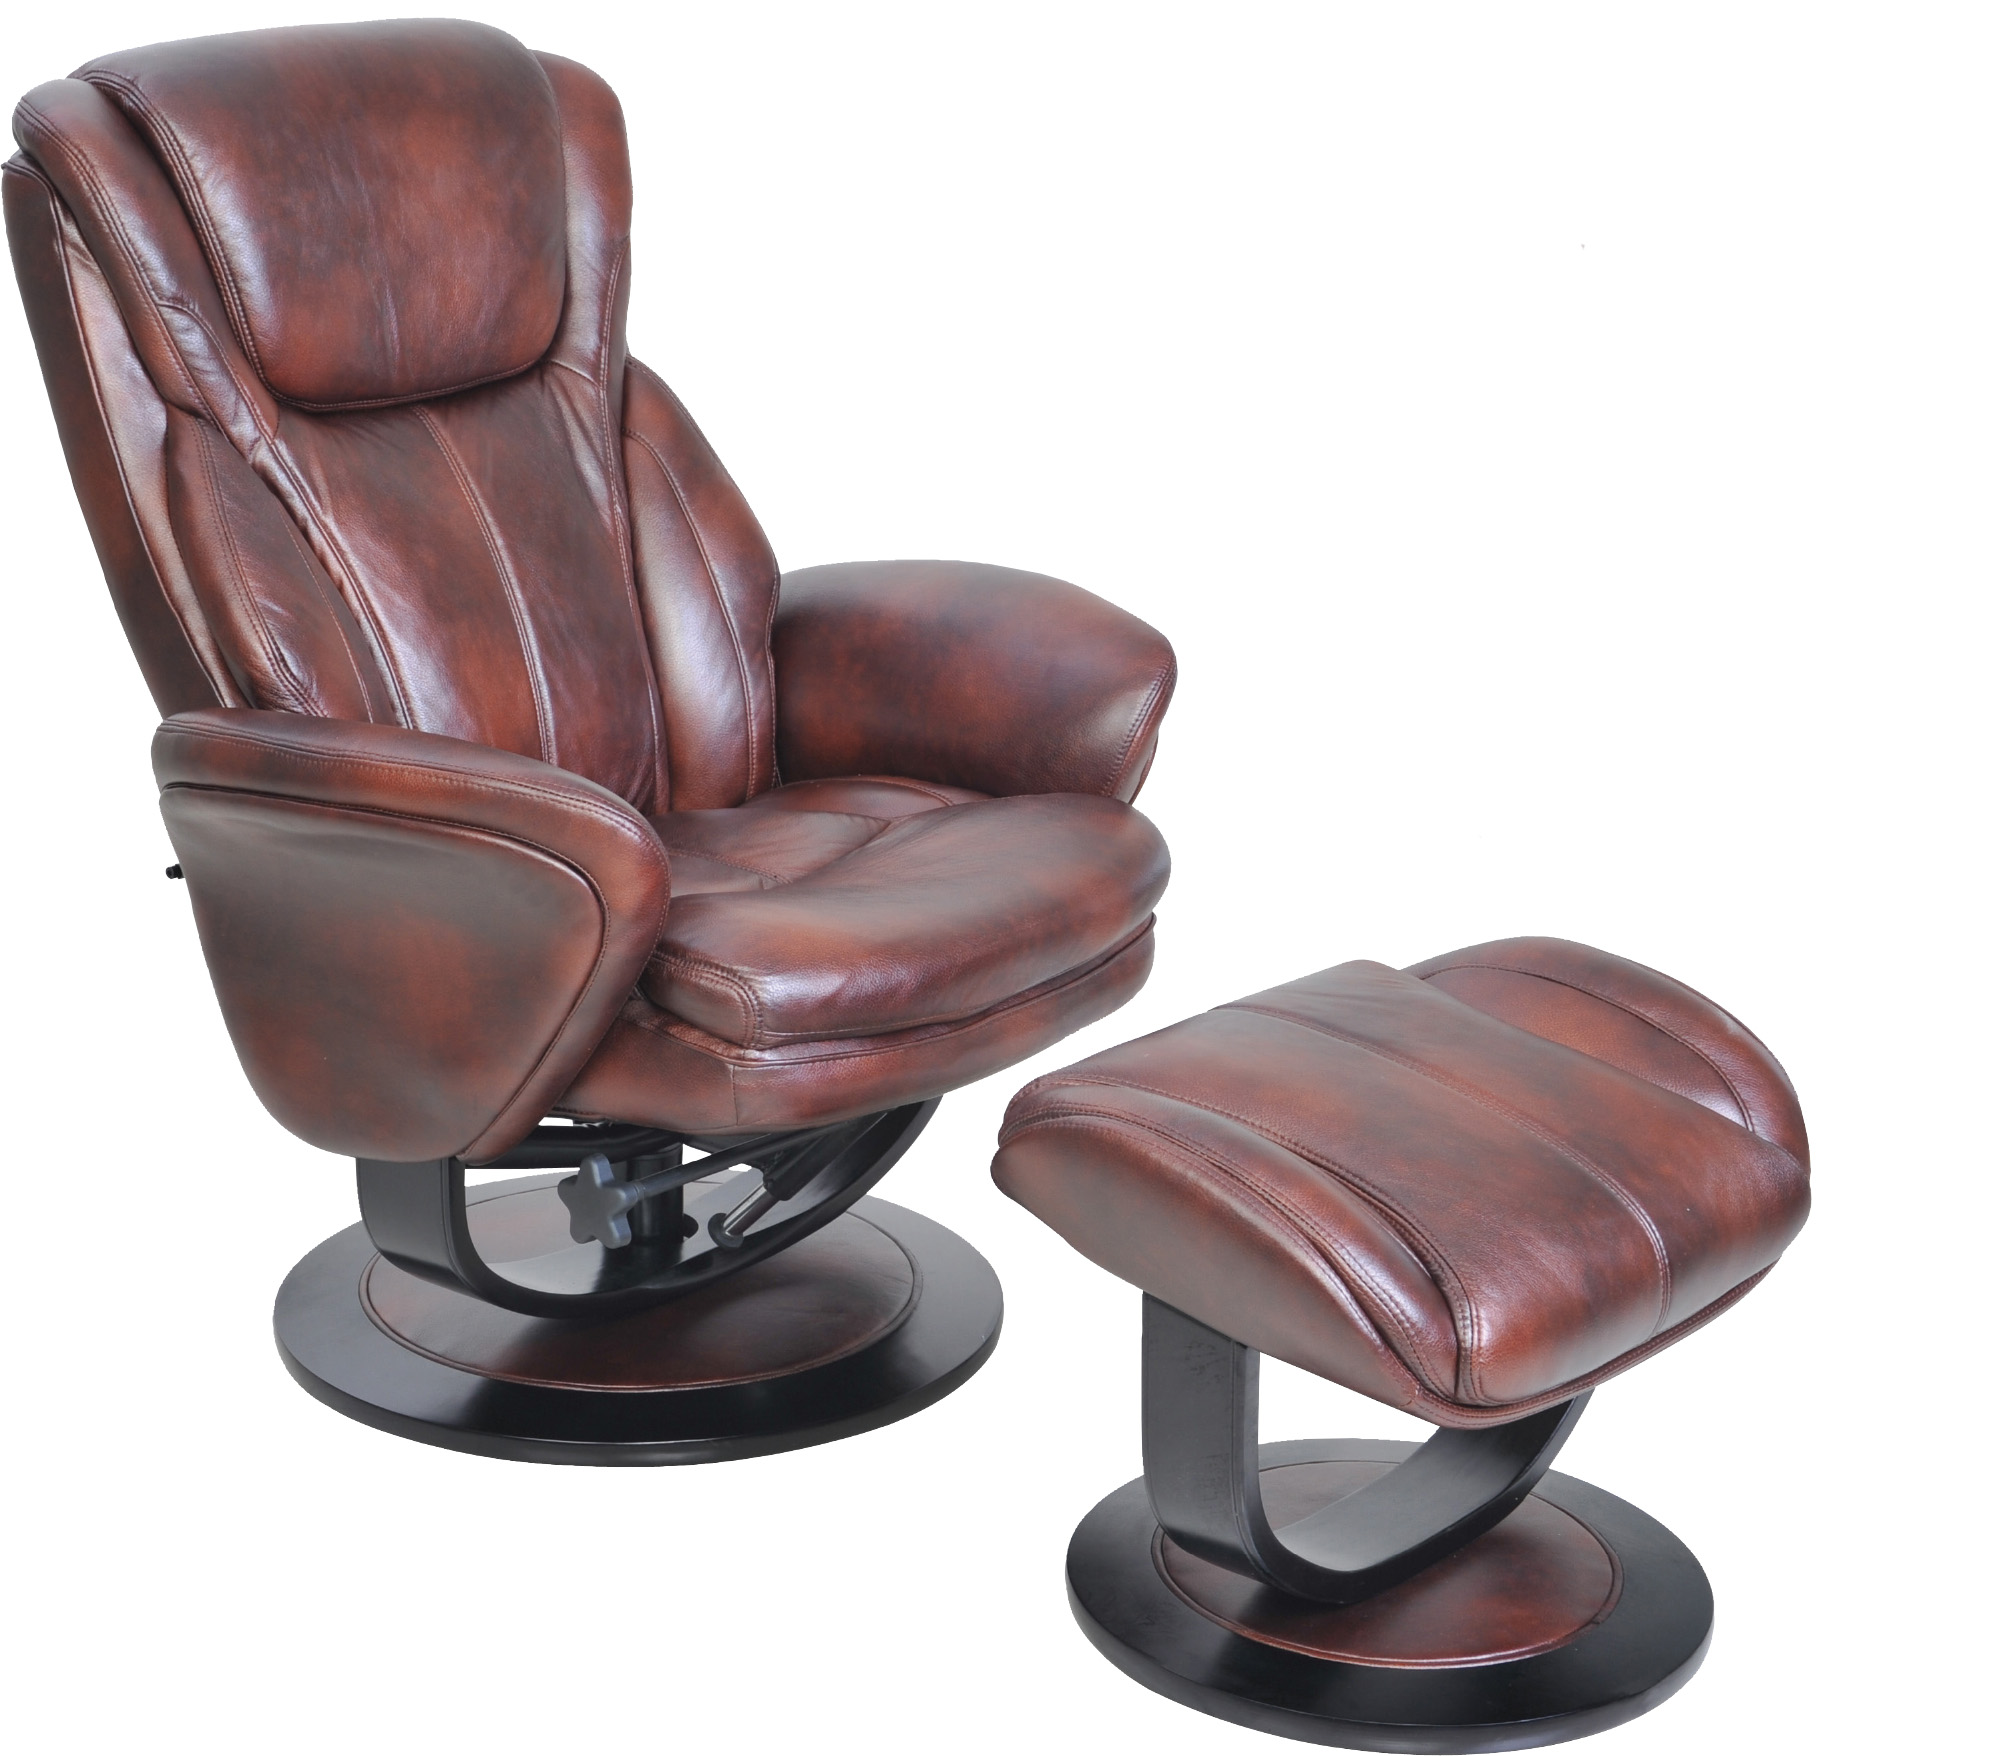 Barcalounger roma ii recliner chair and ottoman leather